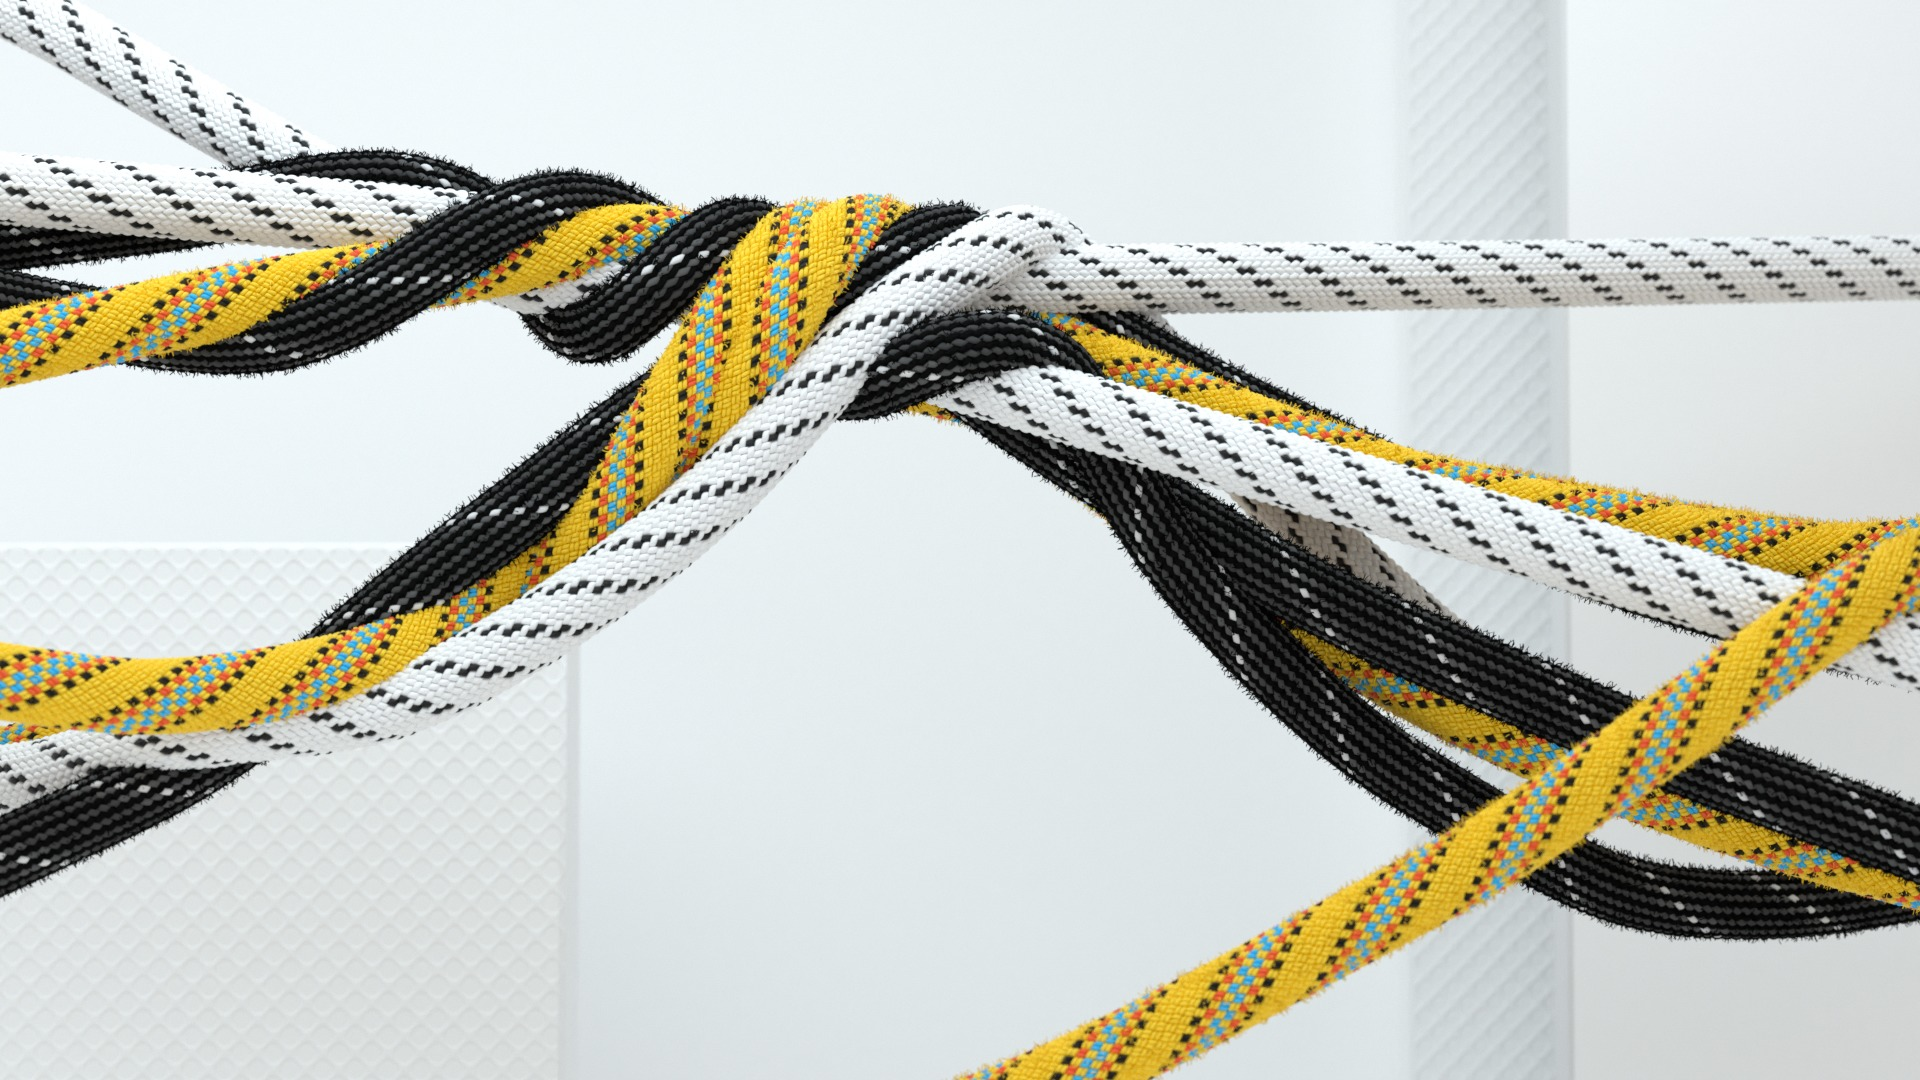 3D Ropes Knoted - Motion Graphics and Styleframe